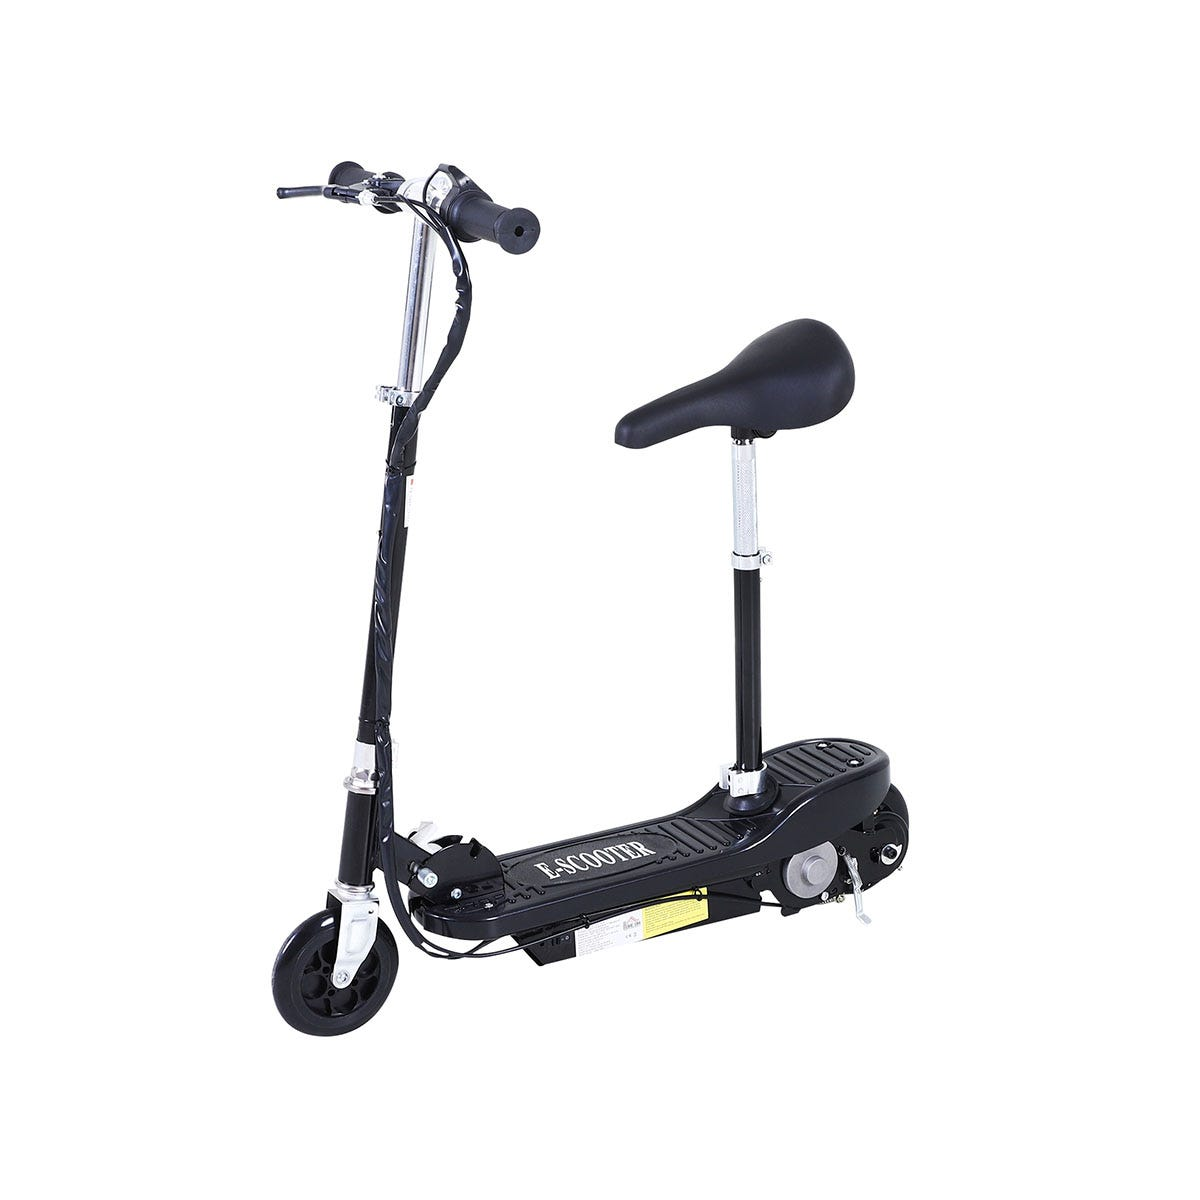 Reiten Kids Foldable E Scooter Electric 120W Toy with Brake Kickstand - Black